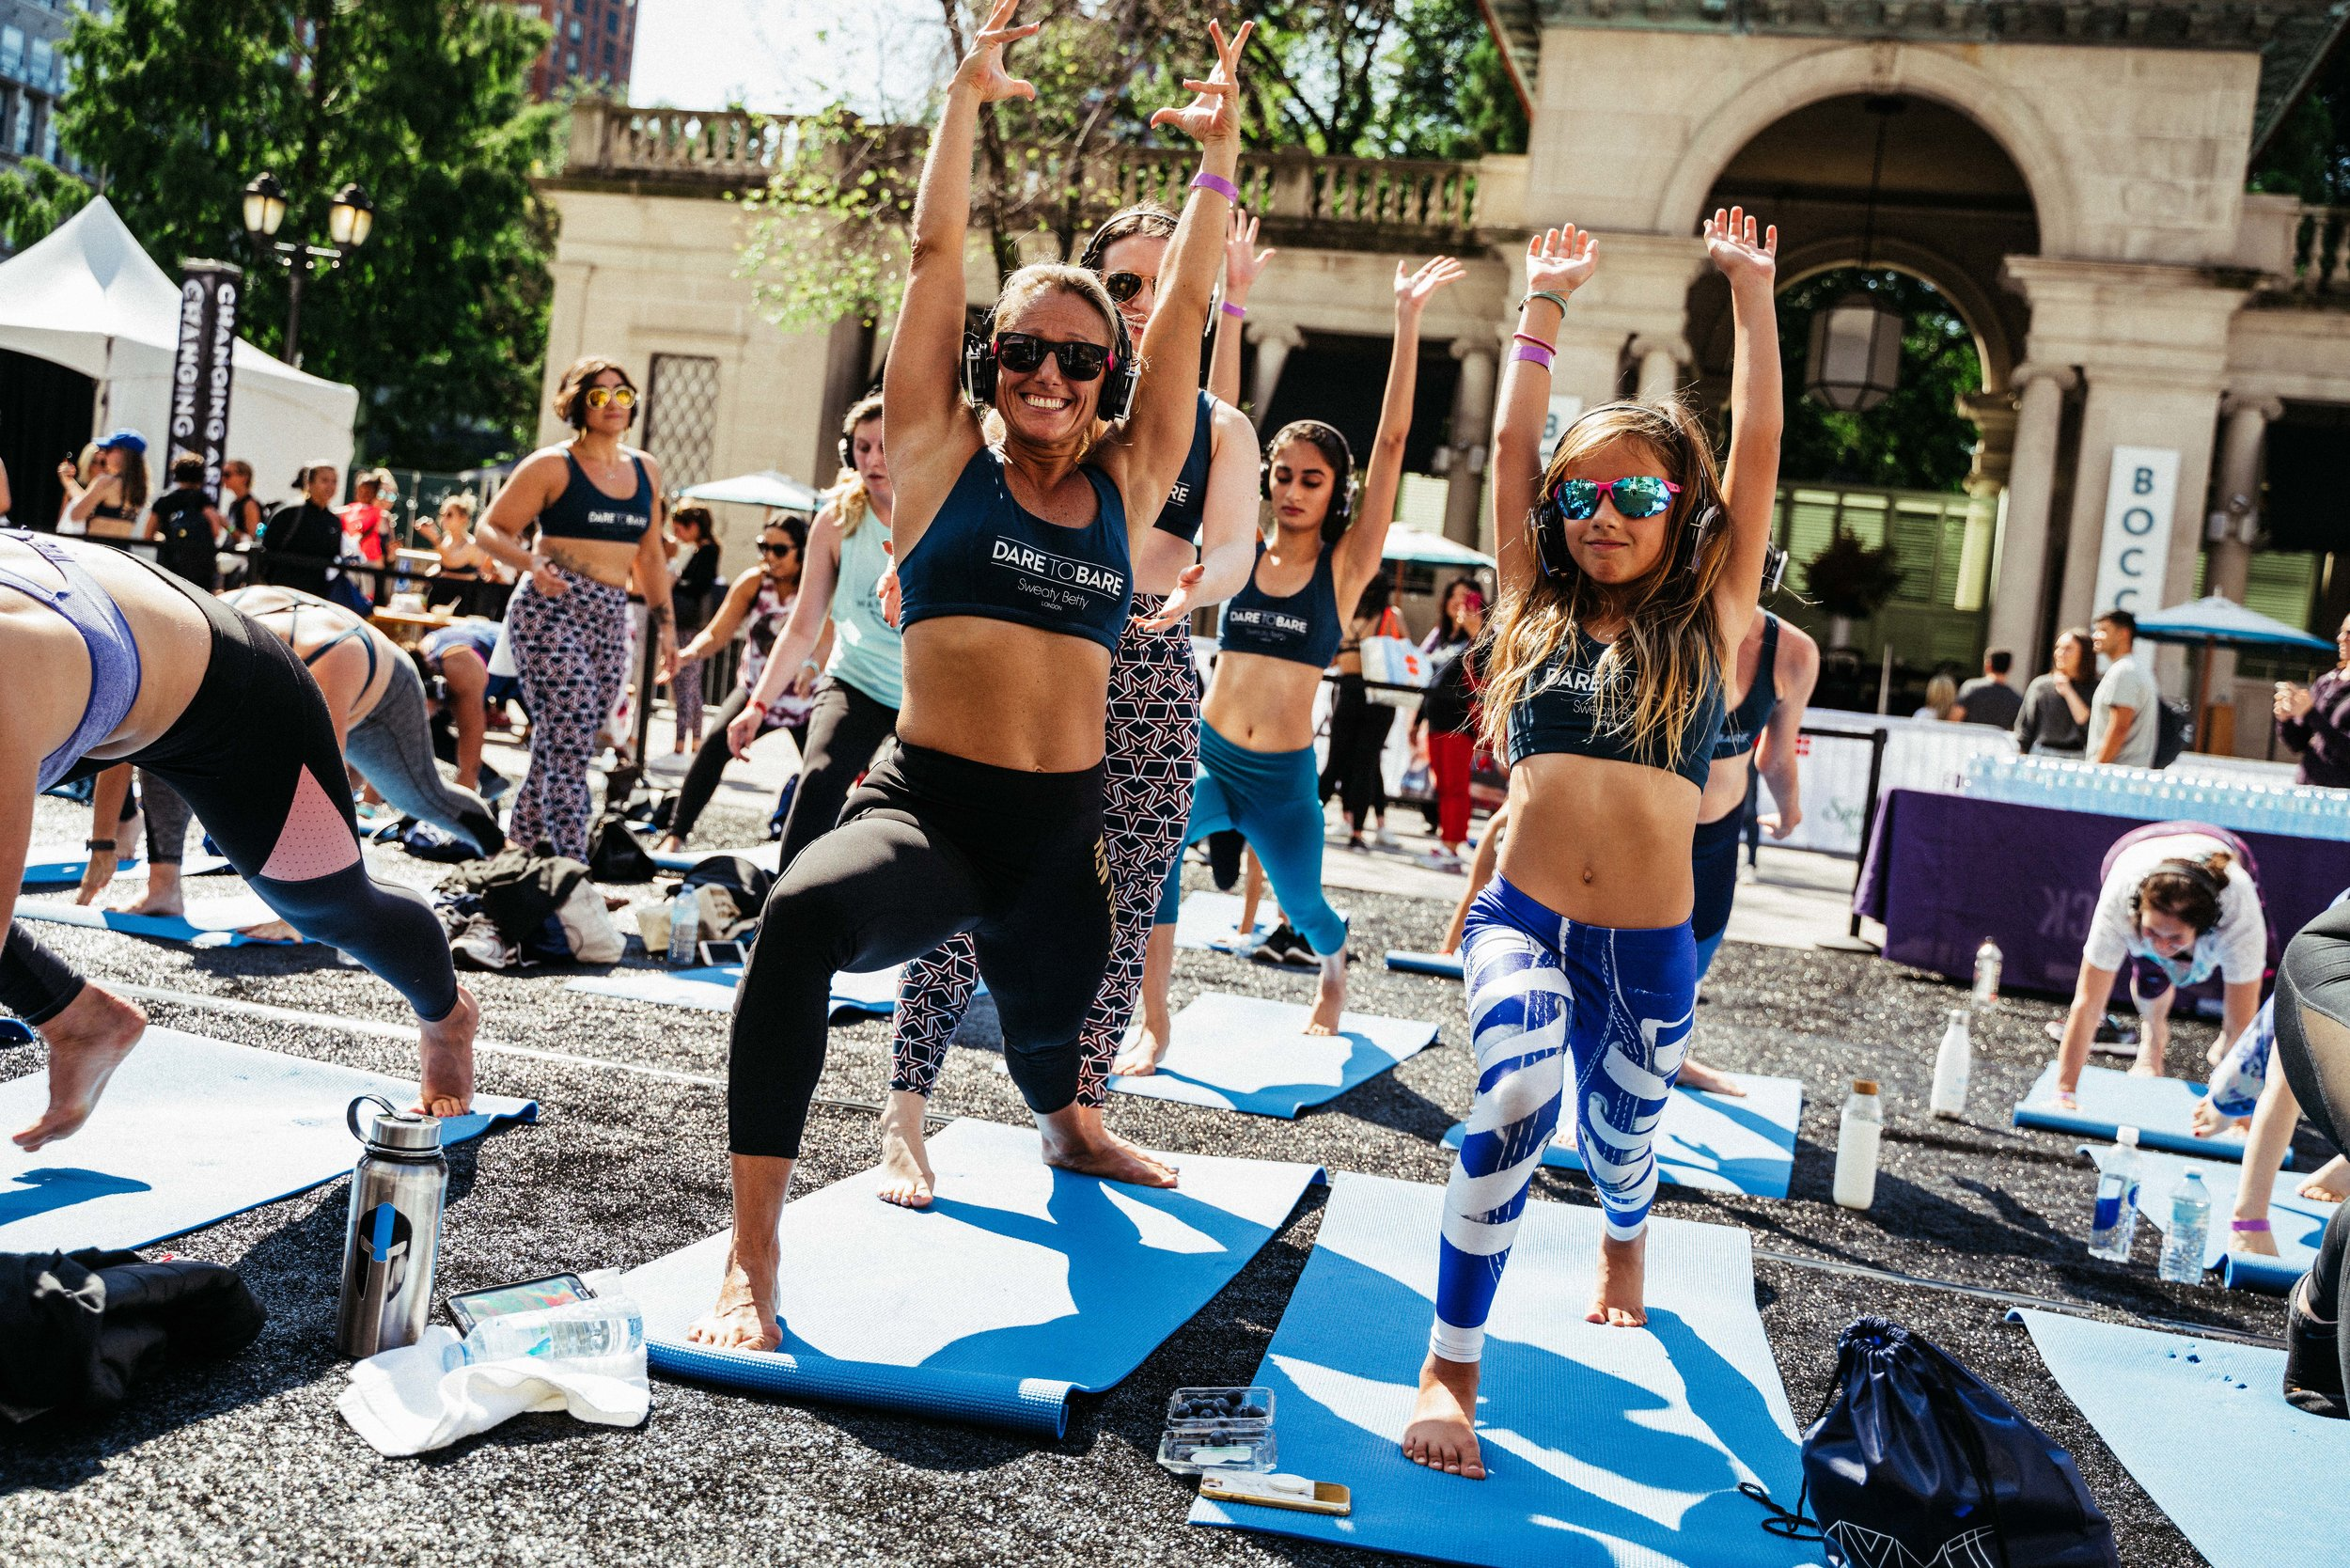 Mother-Daughter Workshop Classes - For the first time ever, We Dare to Bare will feature a Mother-Daughter, movement-based workshop based on Movemeant's very own middle school body-positive curriculum. Attendees will address critical communications around topics like media influence, genetics, being kind to yourself and others, and the importance of movement.